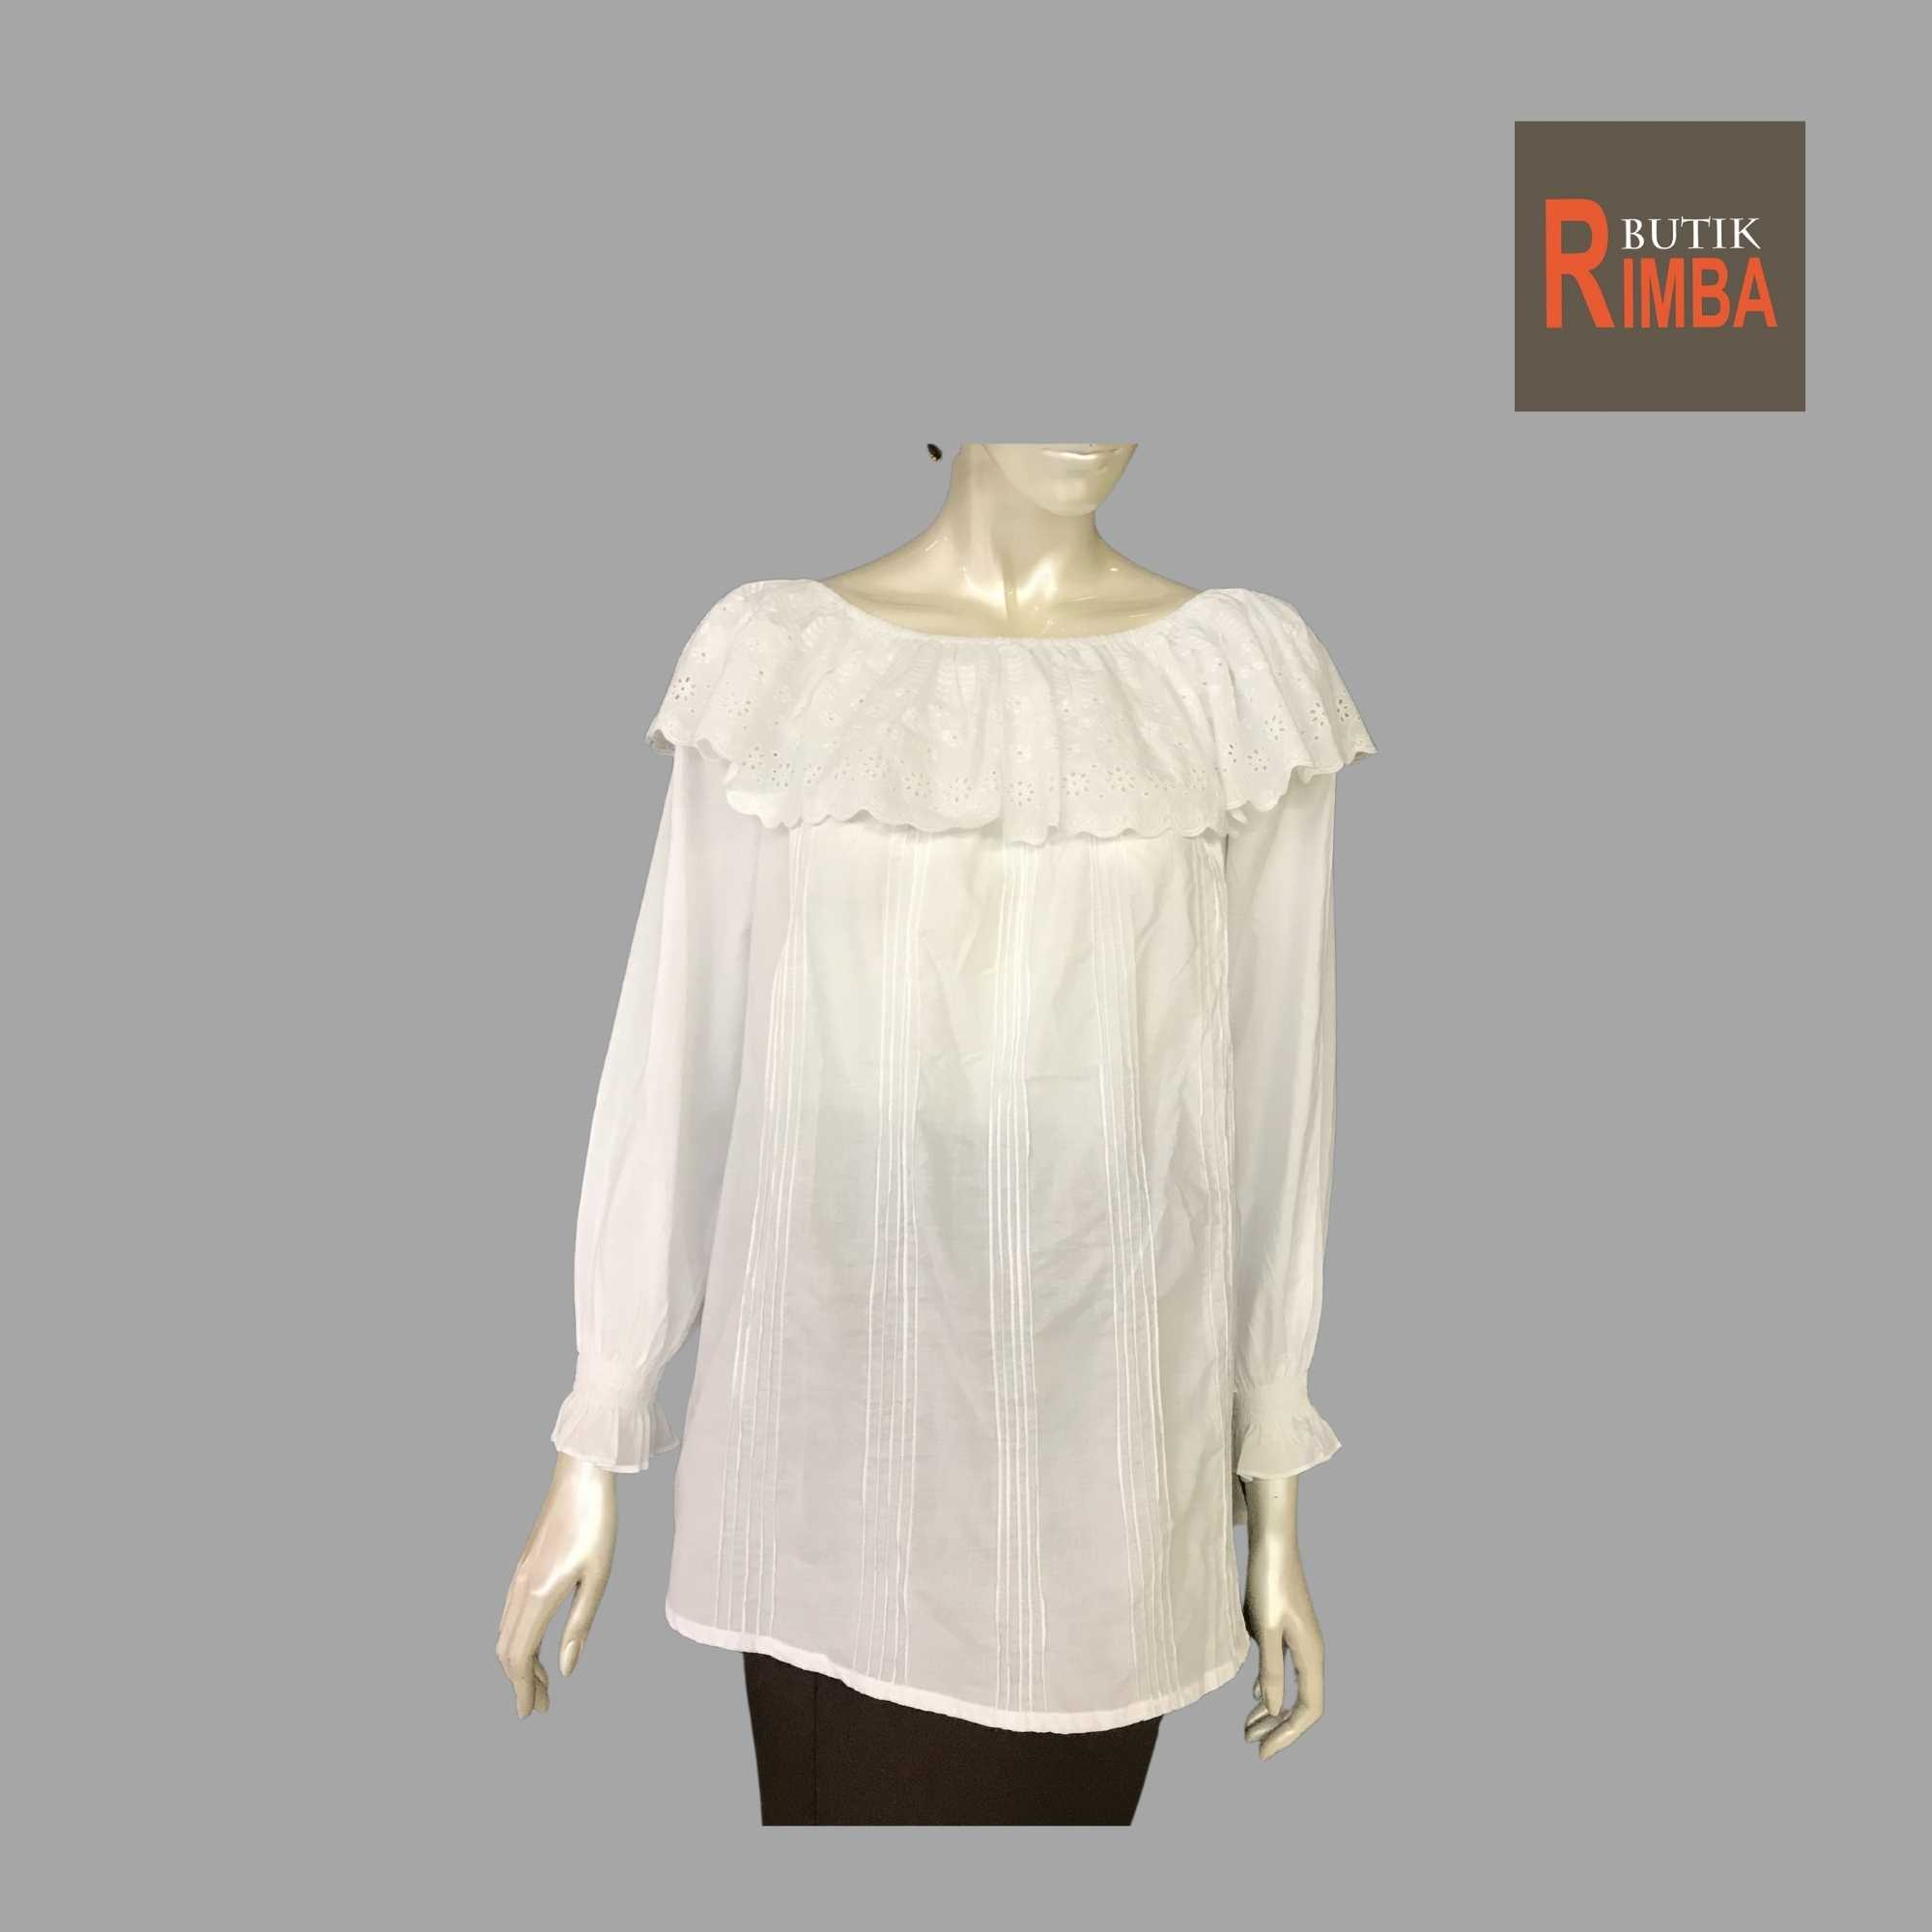 WOMEN CASUAL AND COMFORTABLE WHITE BLOUSE COTTON FREE SIZE PATTERN 06